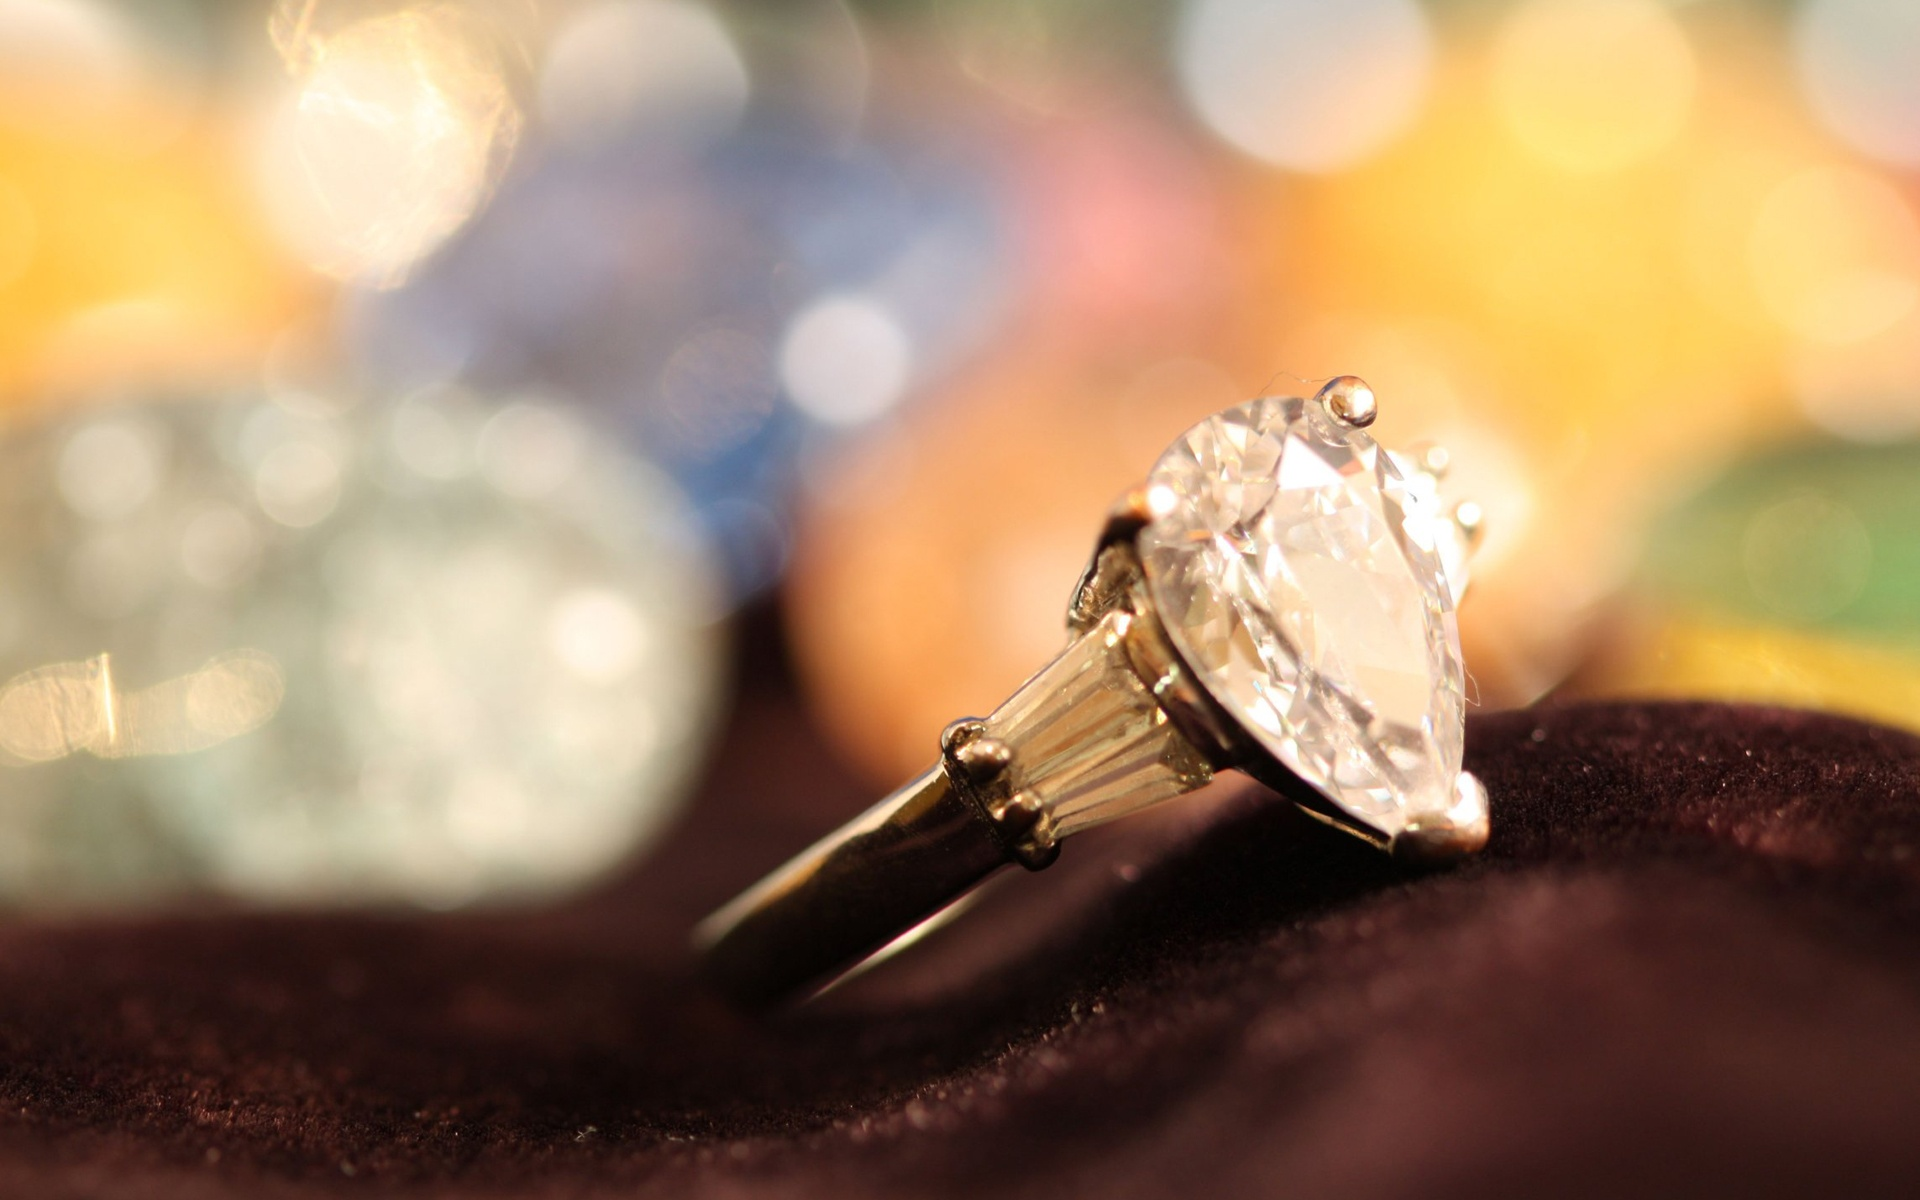 Diamond Engagement Ring Hd Wallpapers Beautiful Desktop Background Images Widescreen Thangals Jewellery